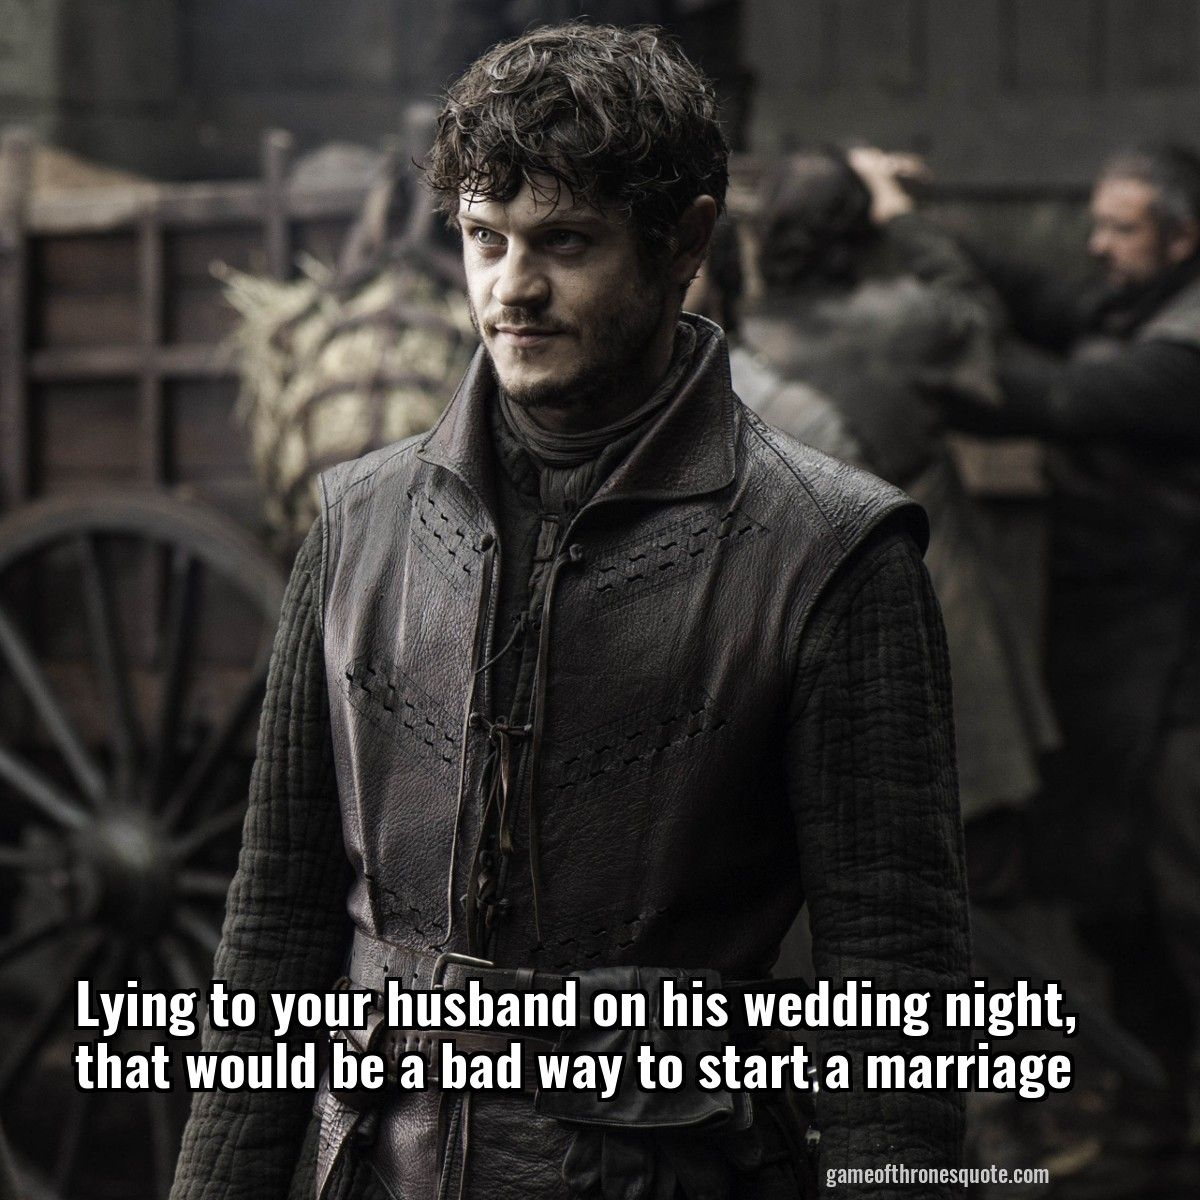 Ramsay Bolton Lying To Your Husband On His Wedding Night That Would Be A